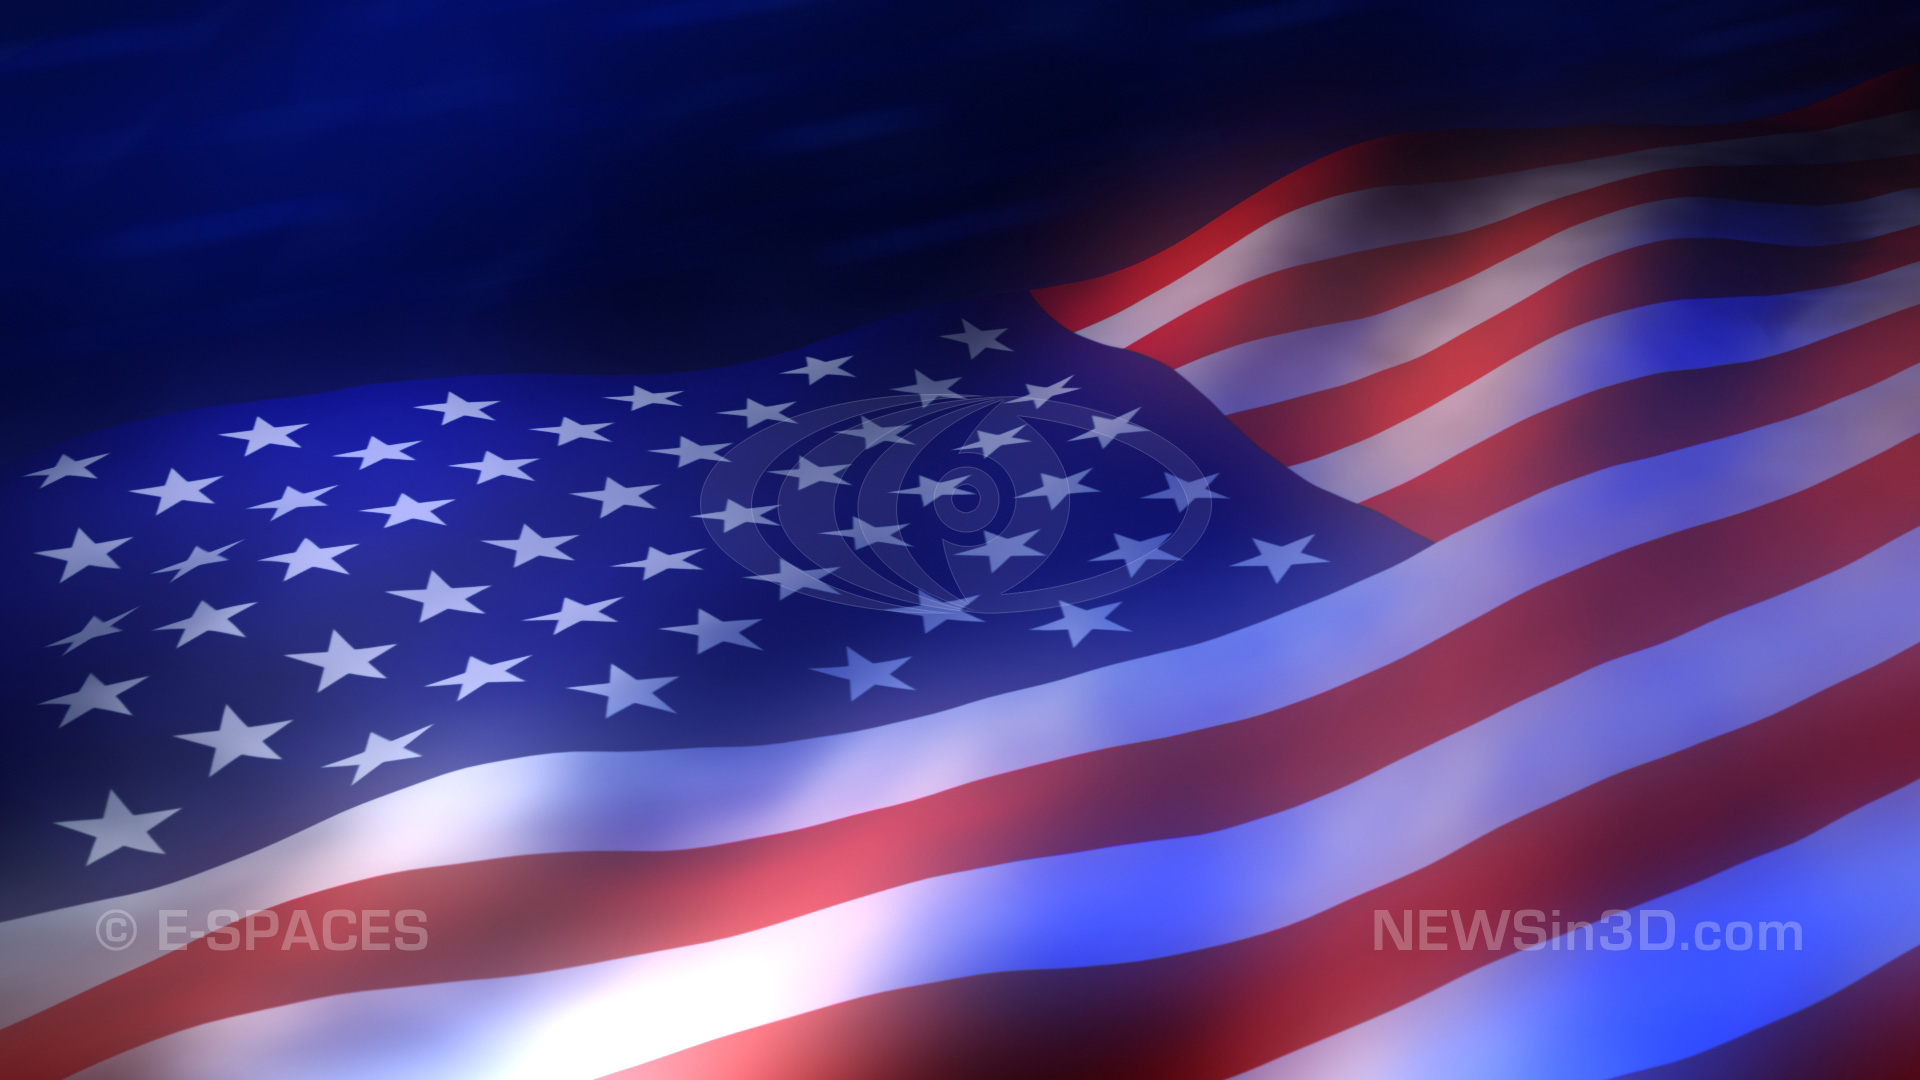 American flag animated background high definition preview still 1920x1080